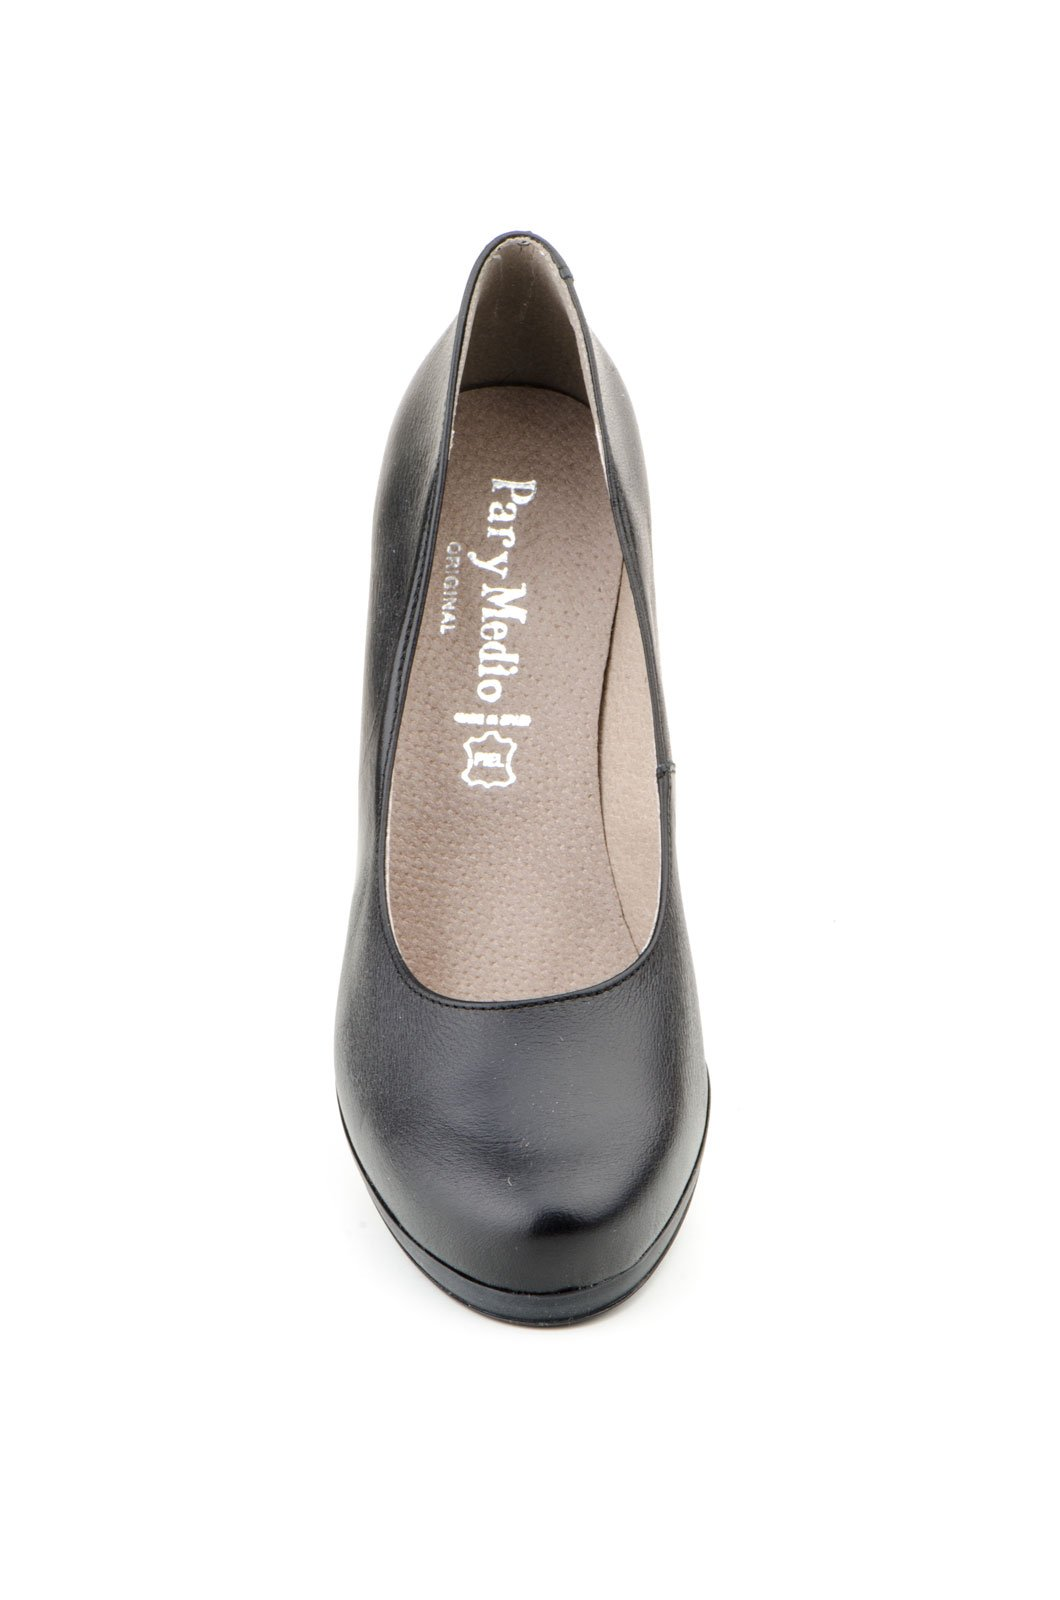 PAR-LEATHER PUMP-MADE IN SPAIN